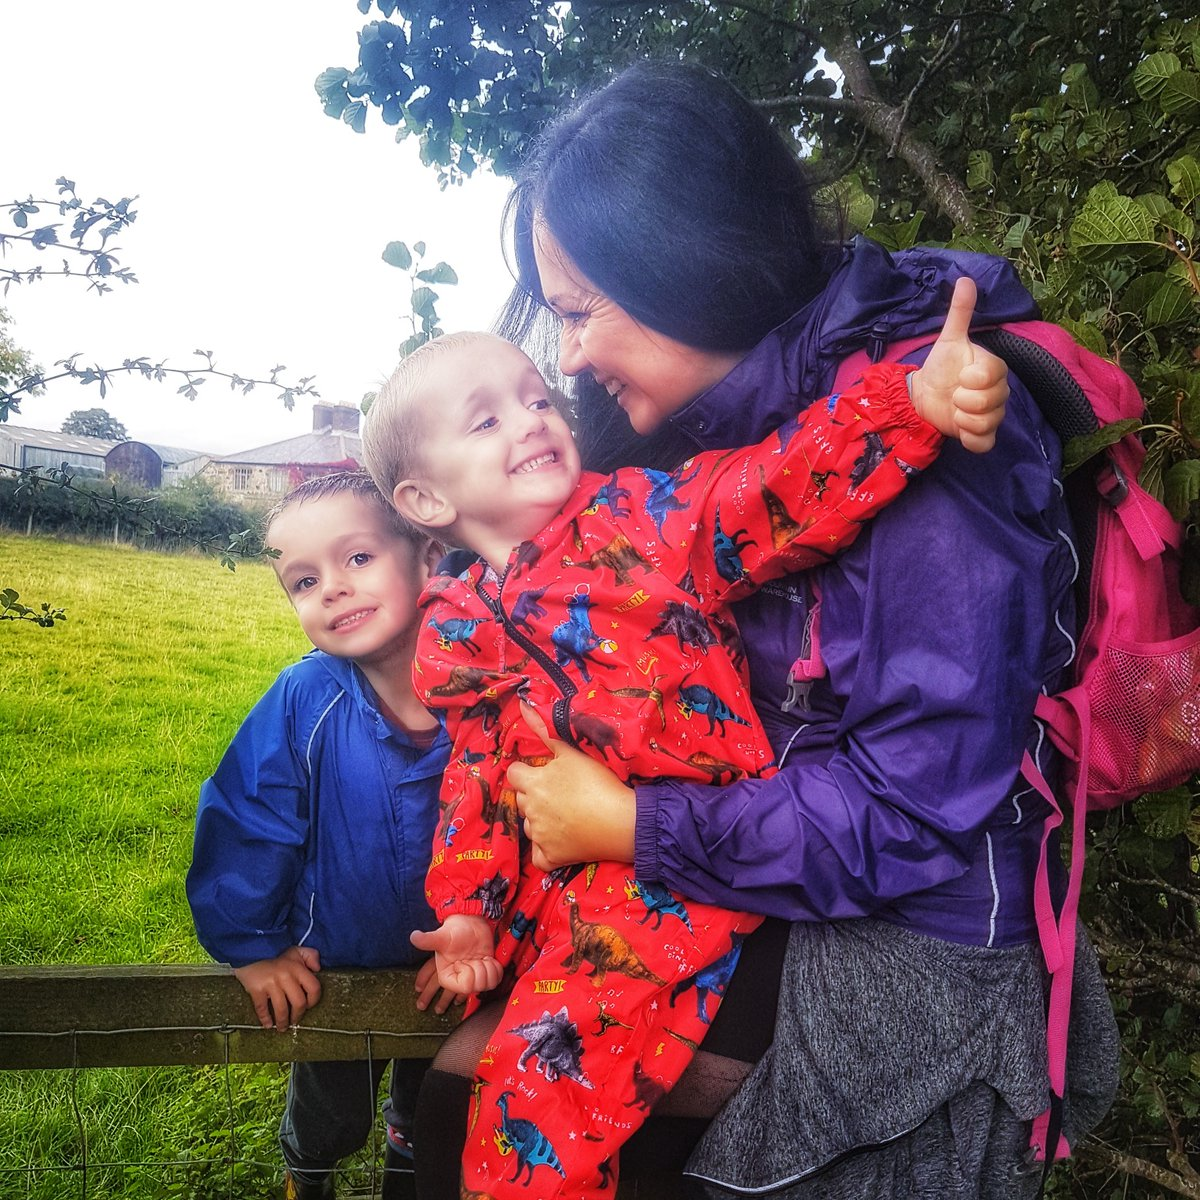 The thoroughly modern mummy: why there is no such thing as work/life balance http://dld.bz/hQ8HM #worklifebalance #worklifeblend #modernmummypic.twitter.com/UZEsiSHdMw